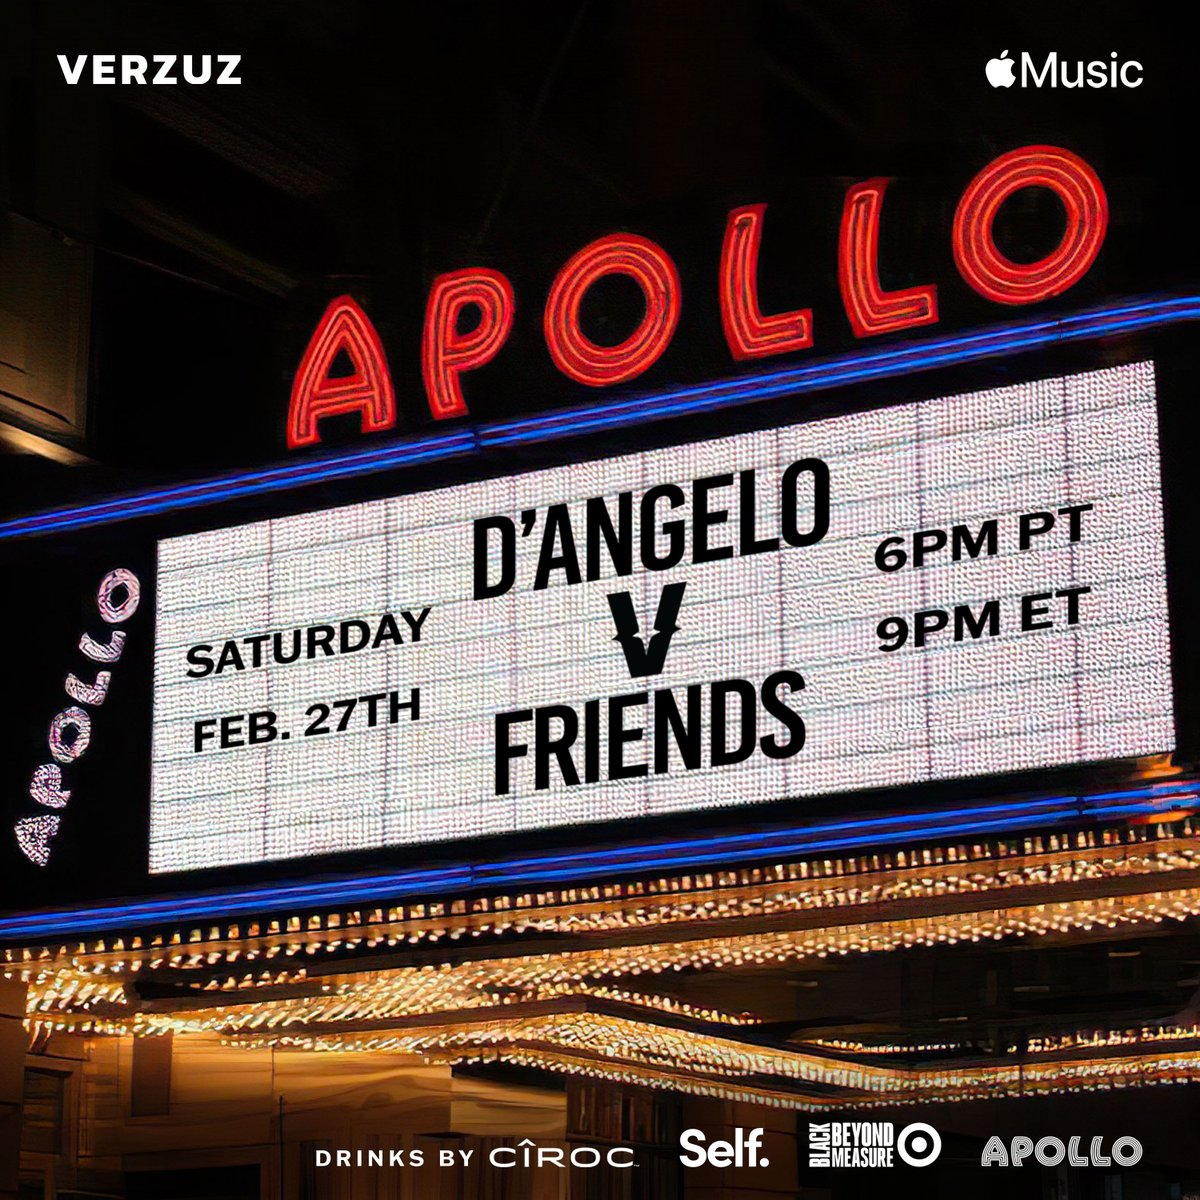 Who's ready for Saturday's iconic showdown?! #VERZUZ is closing out Black History Month at the legendary @ApolloTheater in Harlem NYC with the enigmatic D'Angelo (@TheDangelo) vs. Friends.  Saturday, February 27th at 6pm PT/9pm ET 🔥❤️ #VerzuzAtTheApollo Drinks by @Ciroc